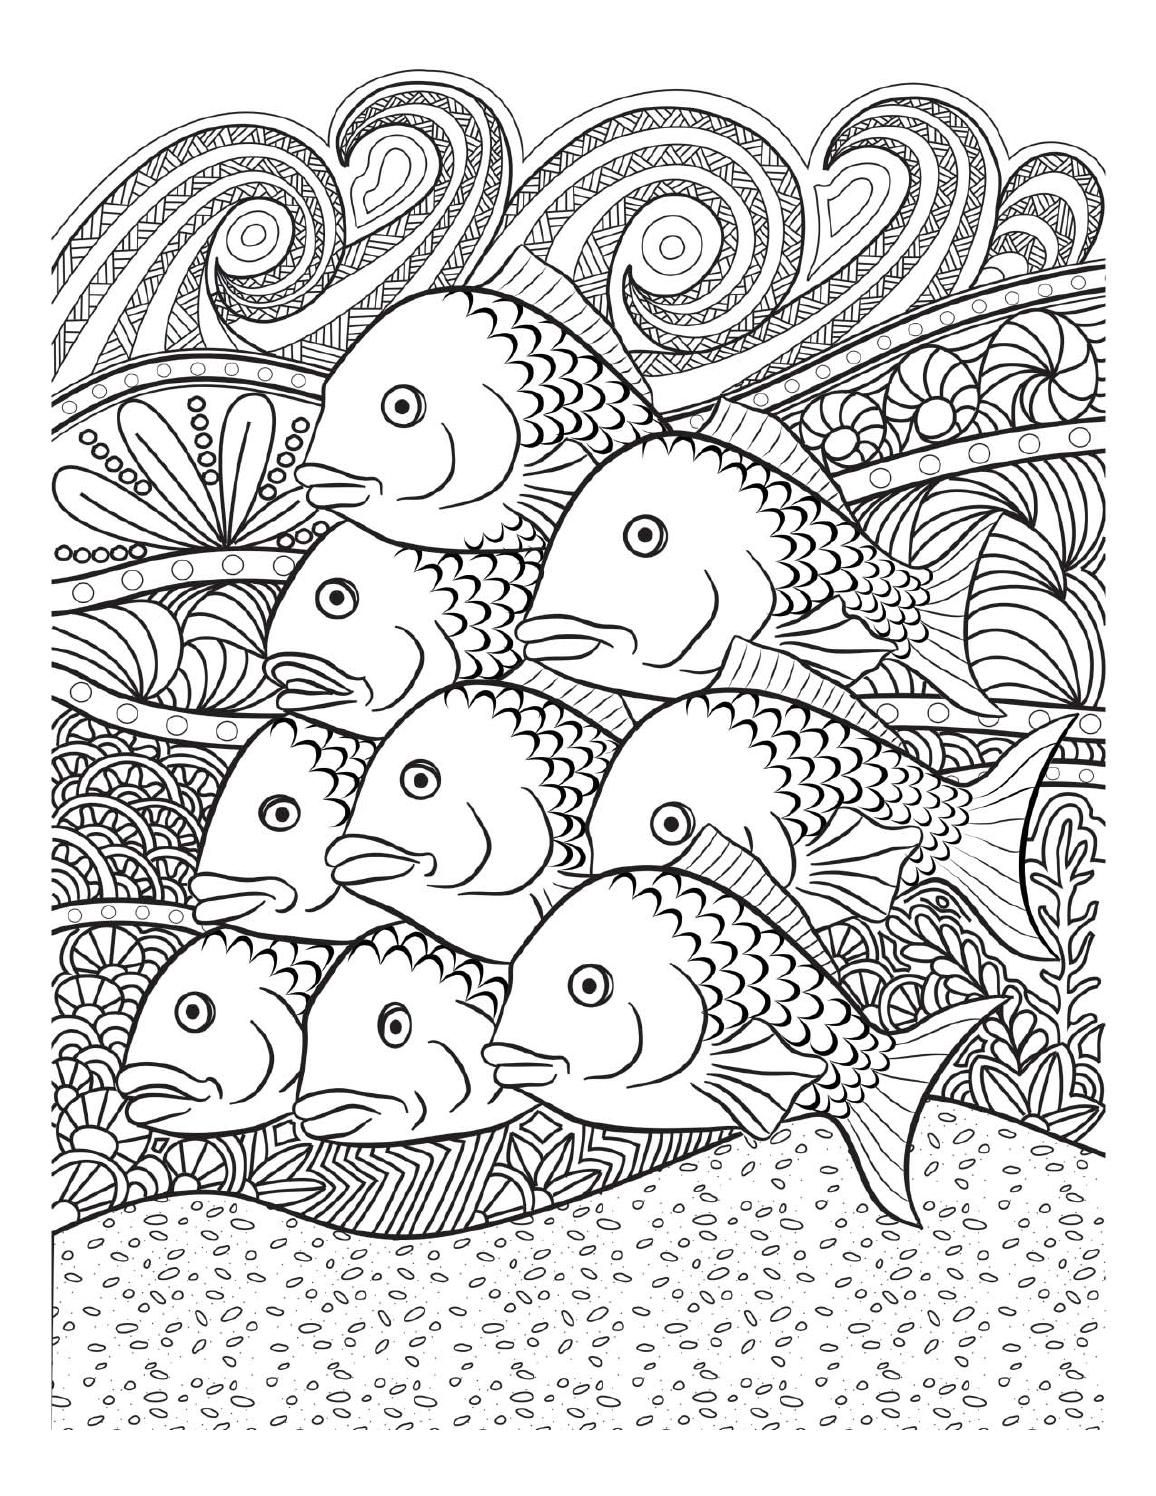 Oceana Adult Coloring Coloring Books And Underwater